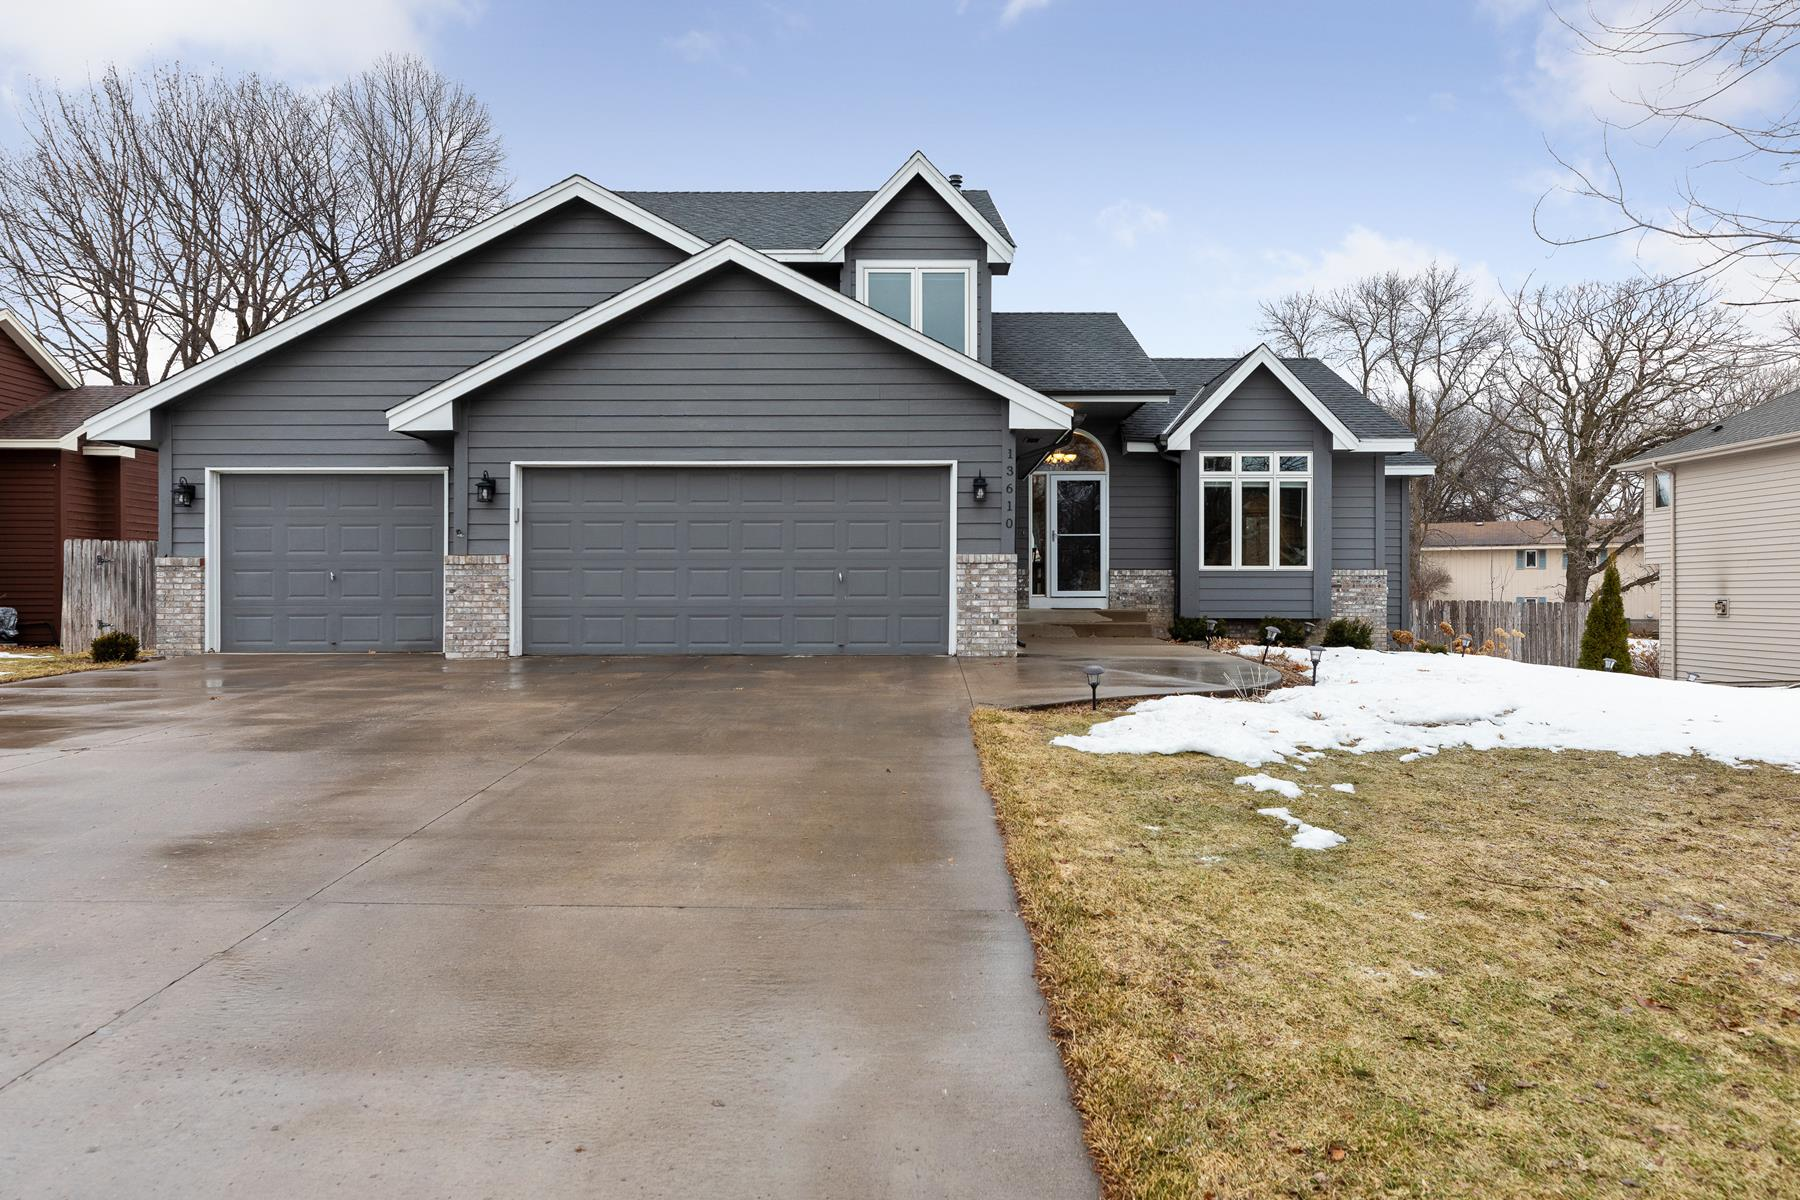 Single Family Homes for Sale at Updated 2-Story Home in sought after lake camelot estates, Plymouth 13610 61st Avenue N Plymouth, Minnesota 55446 United States